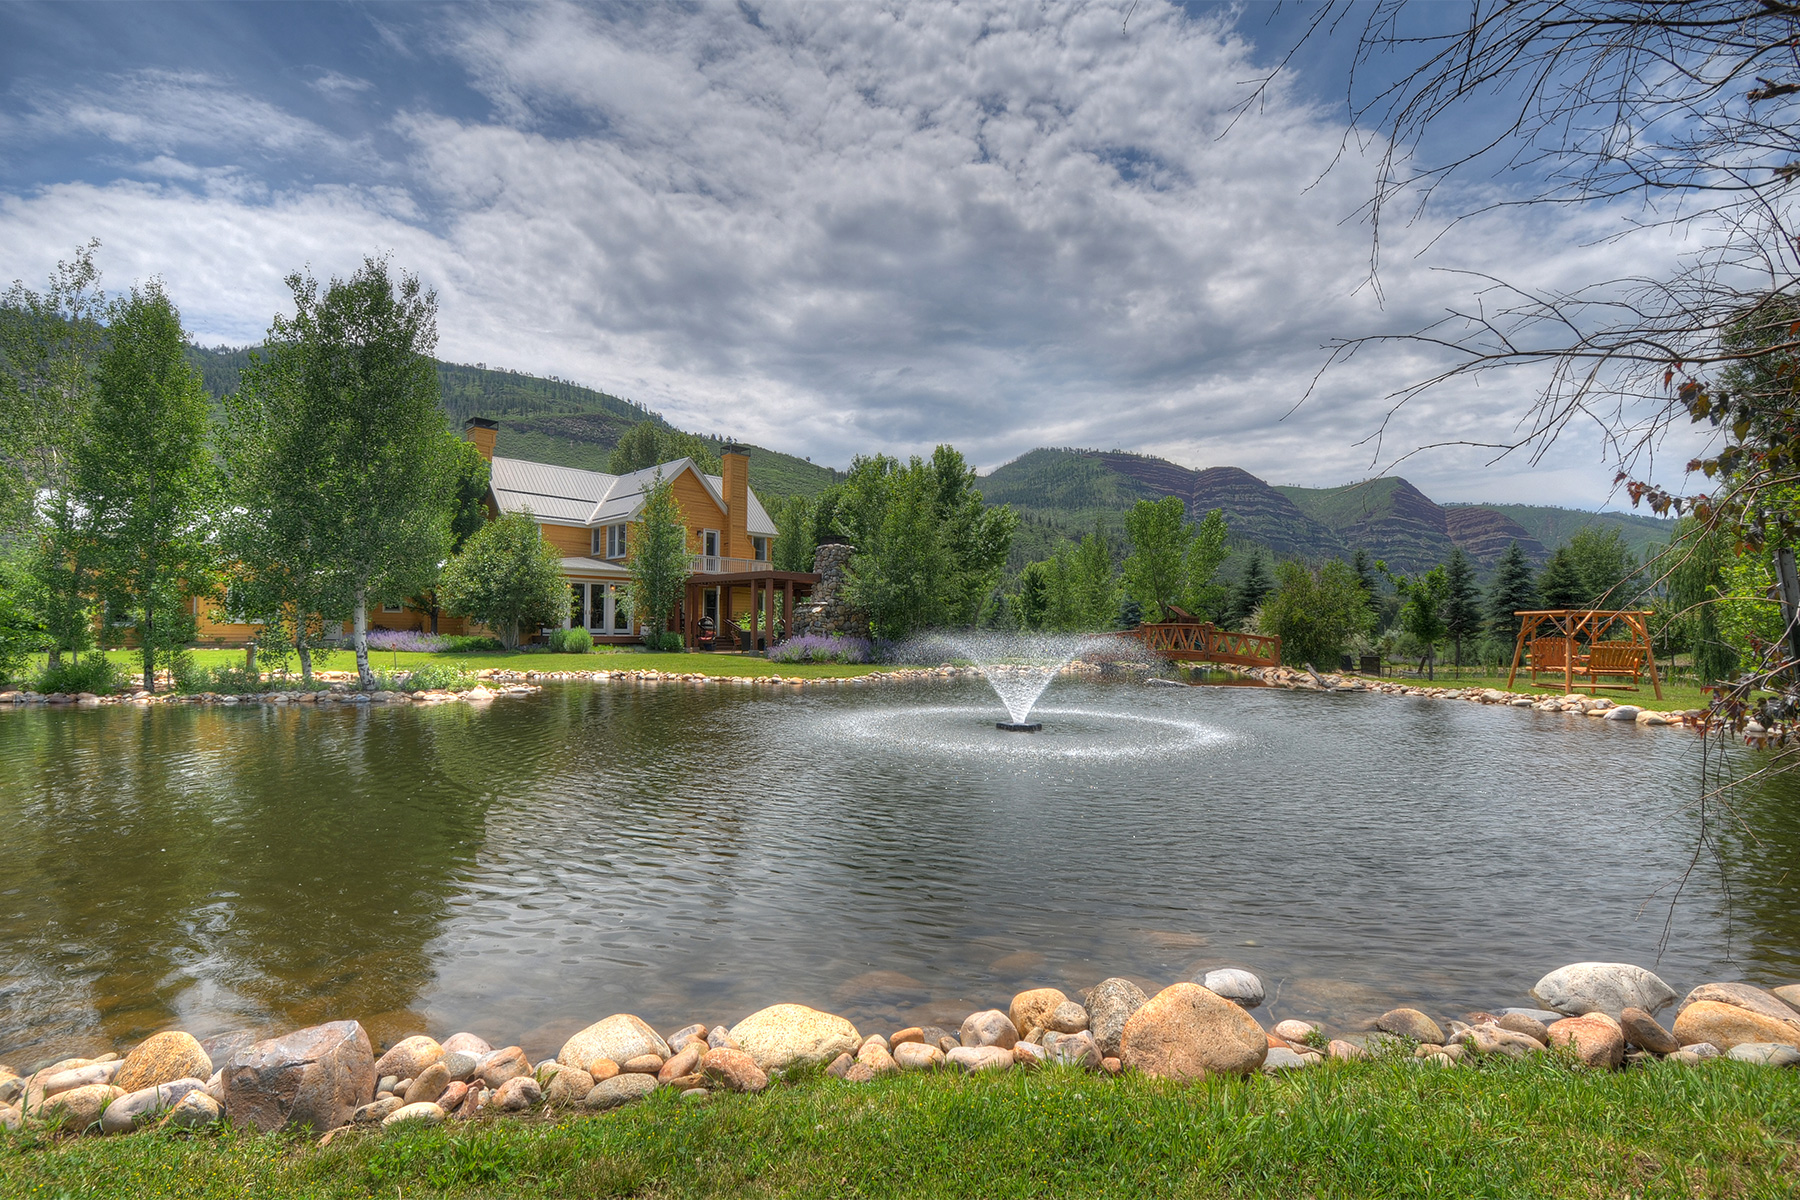 Single Family Home for Sale at Wild Wings Ranch 615 S Coon Creek Durango, Colorado, 81301 United States